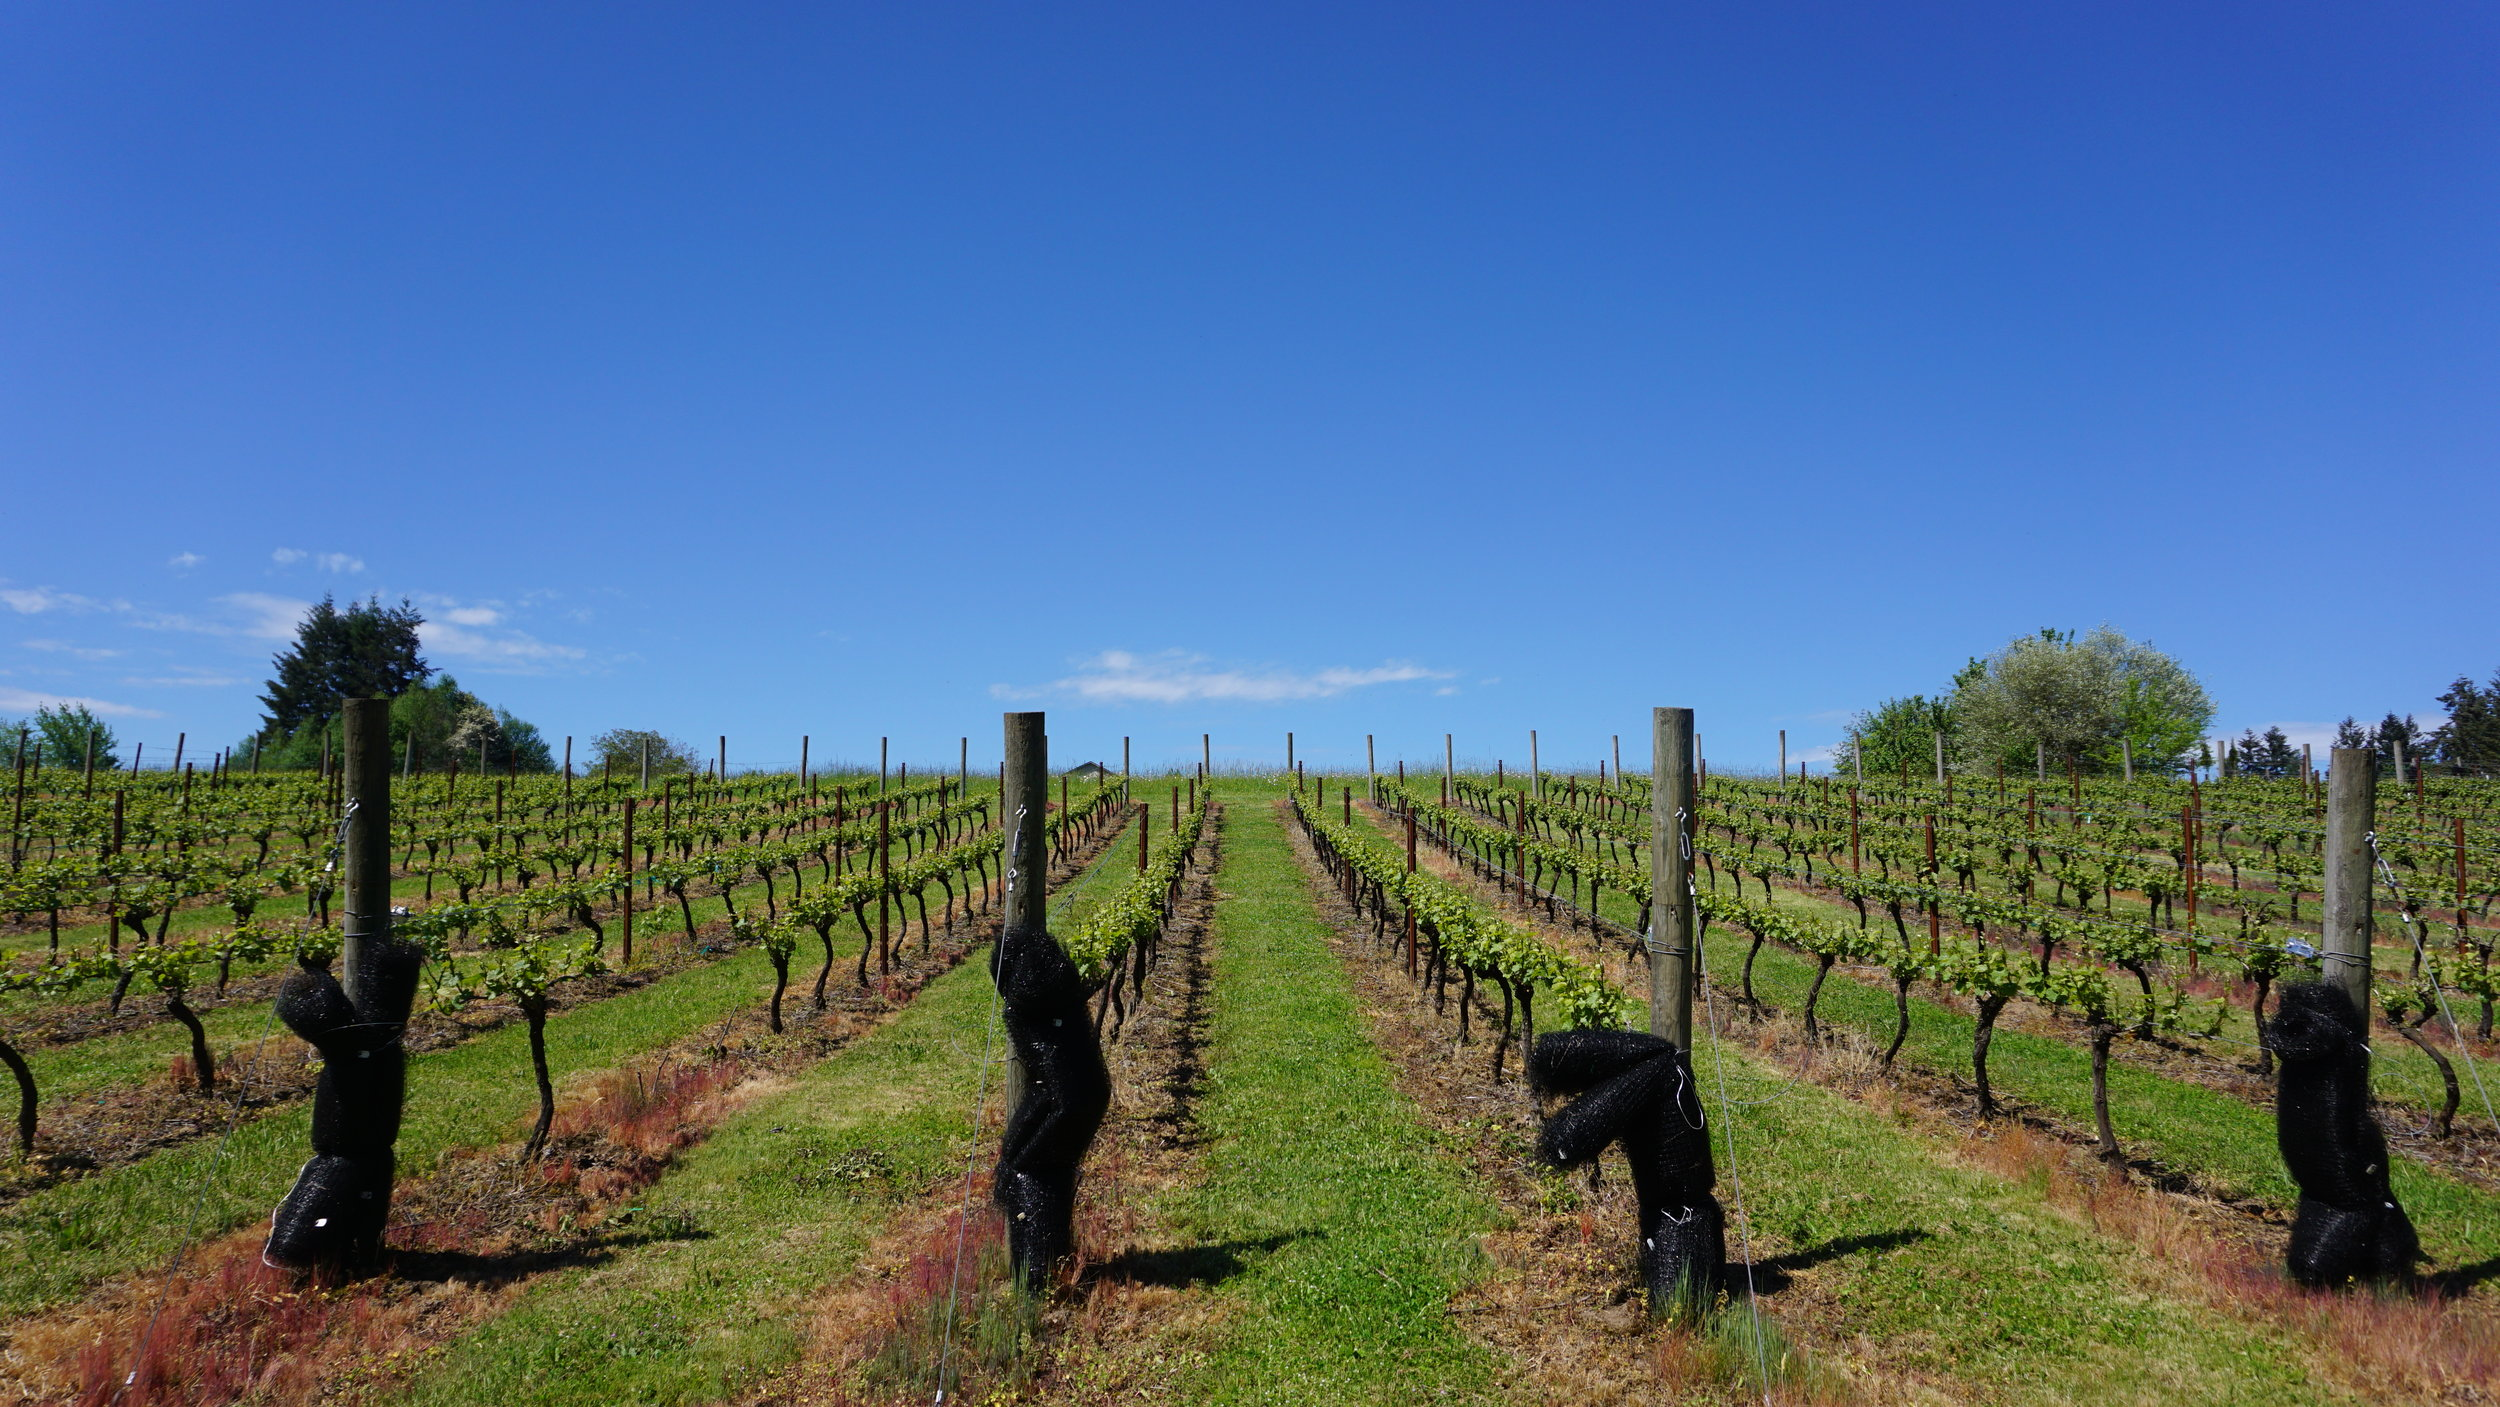 Stavalaura Vineyards and Winery has five acres under vines and 20 more prepped for planting. Viki Eierdam